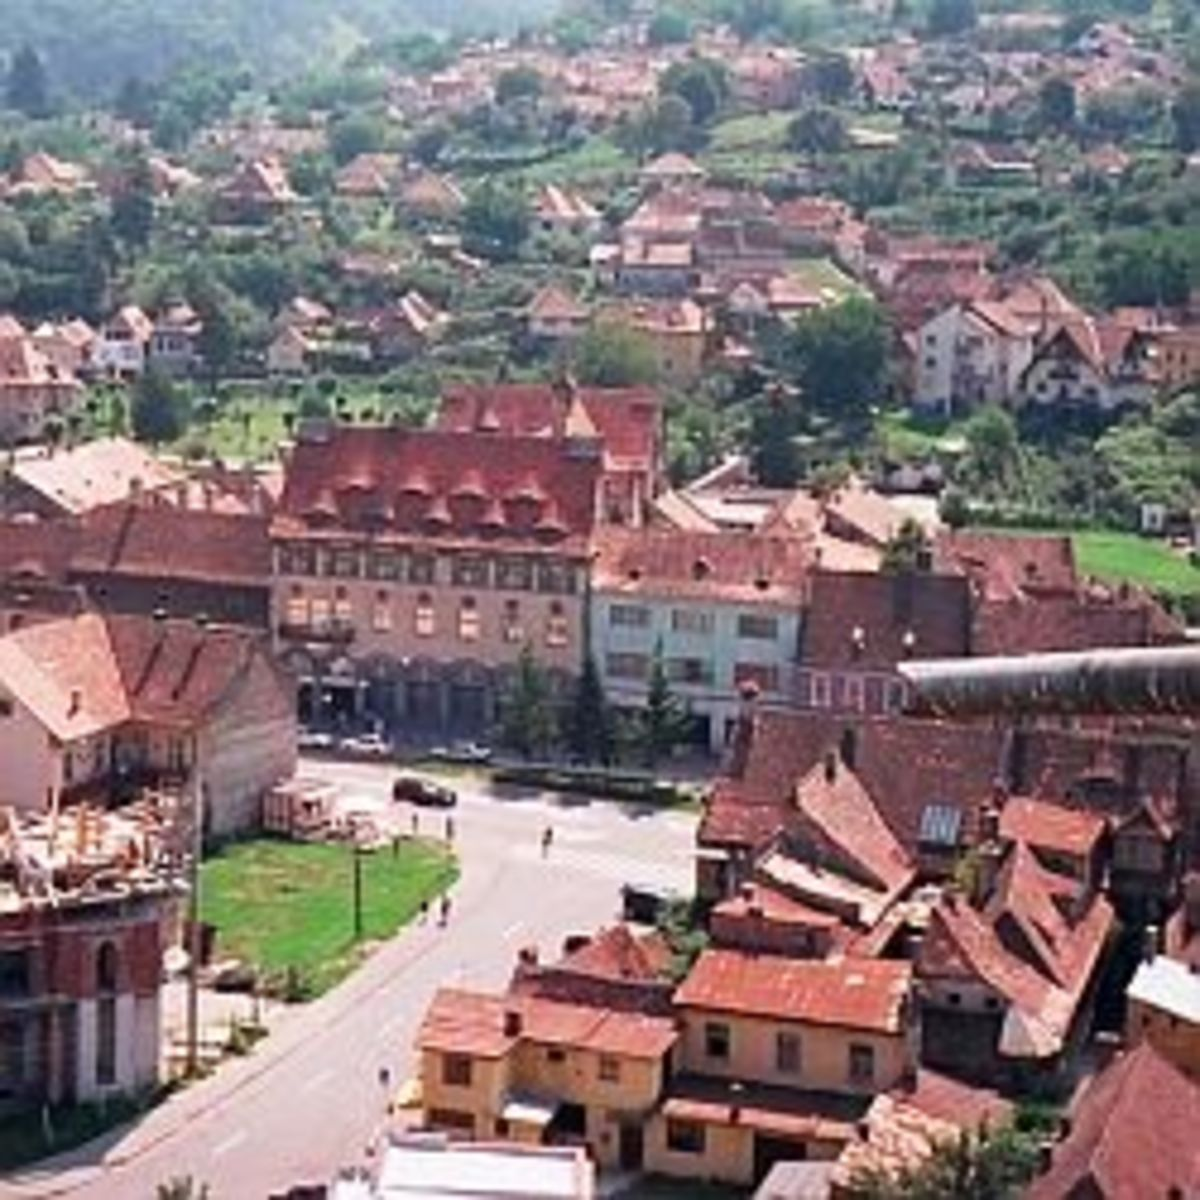 Sighisoara - the City where Vlad Tepes Was Born